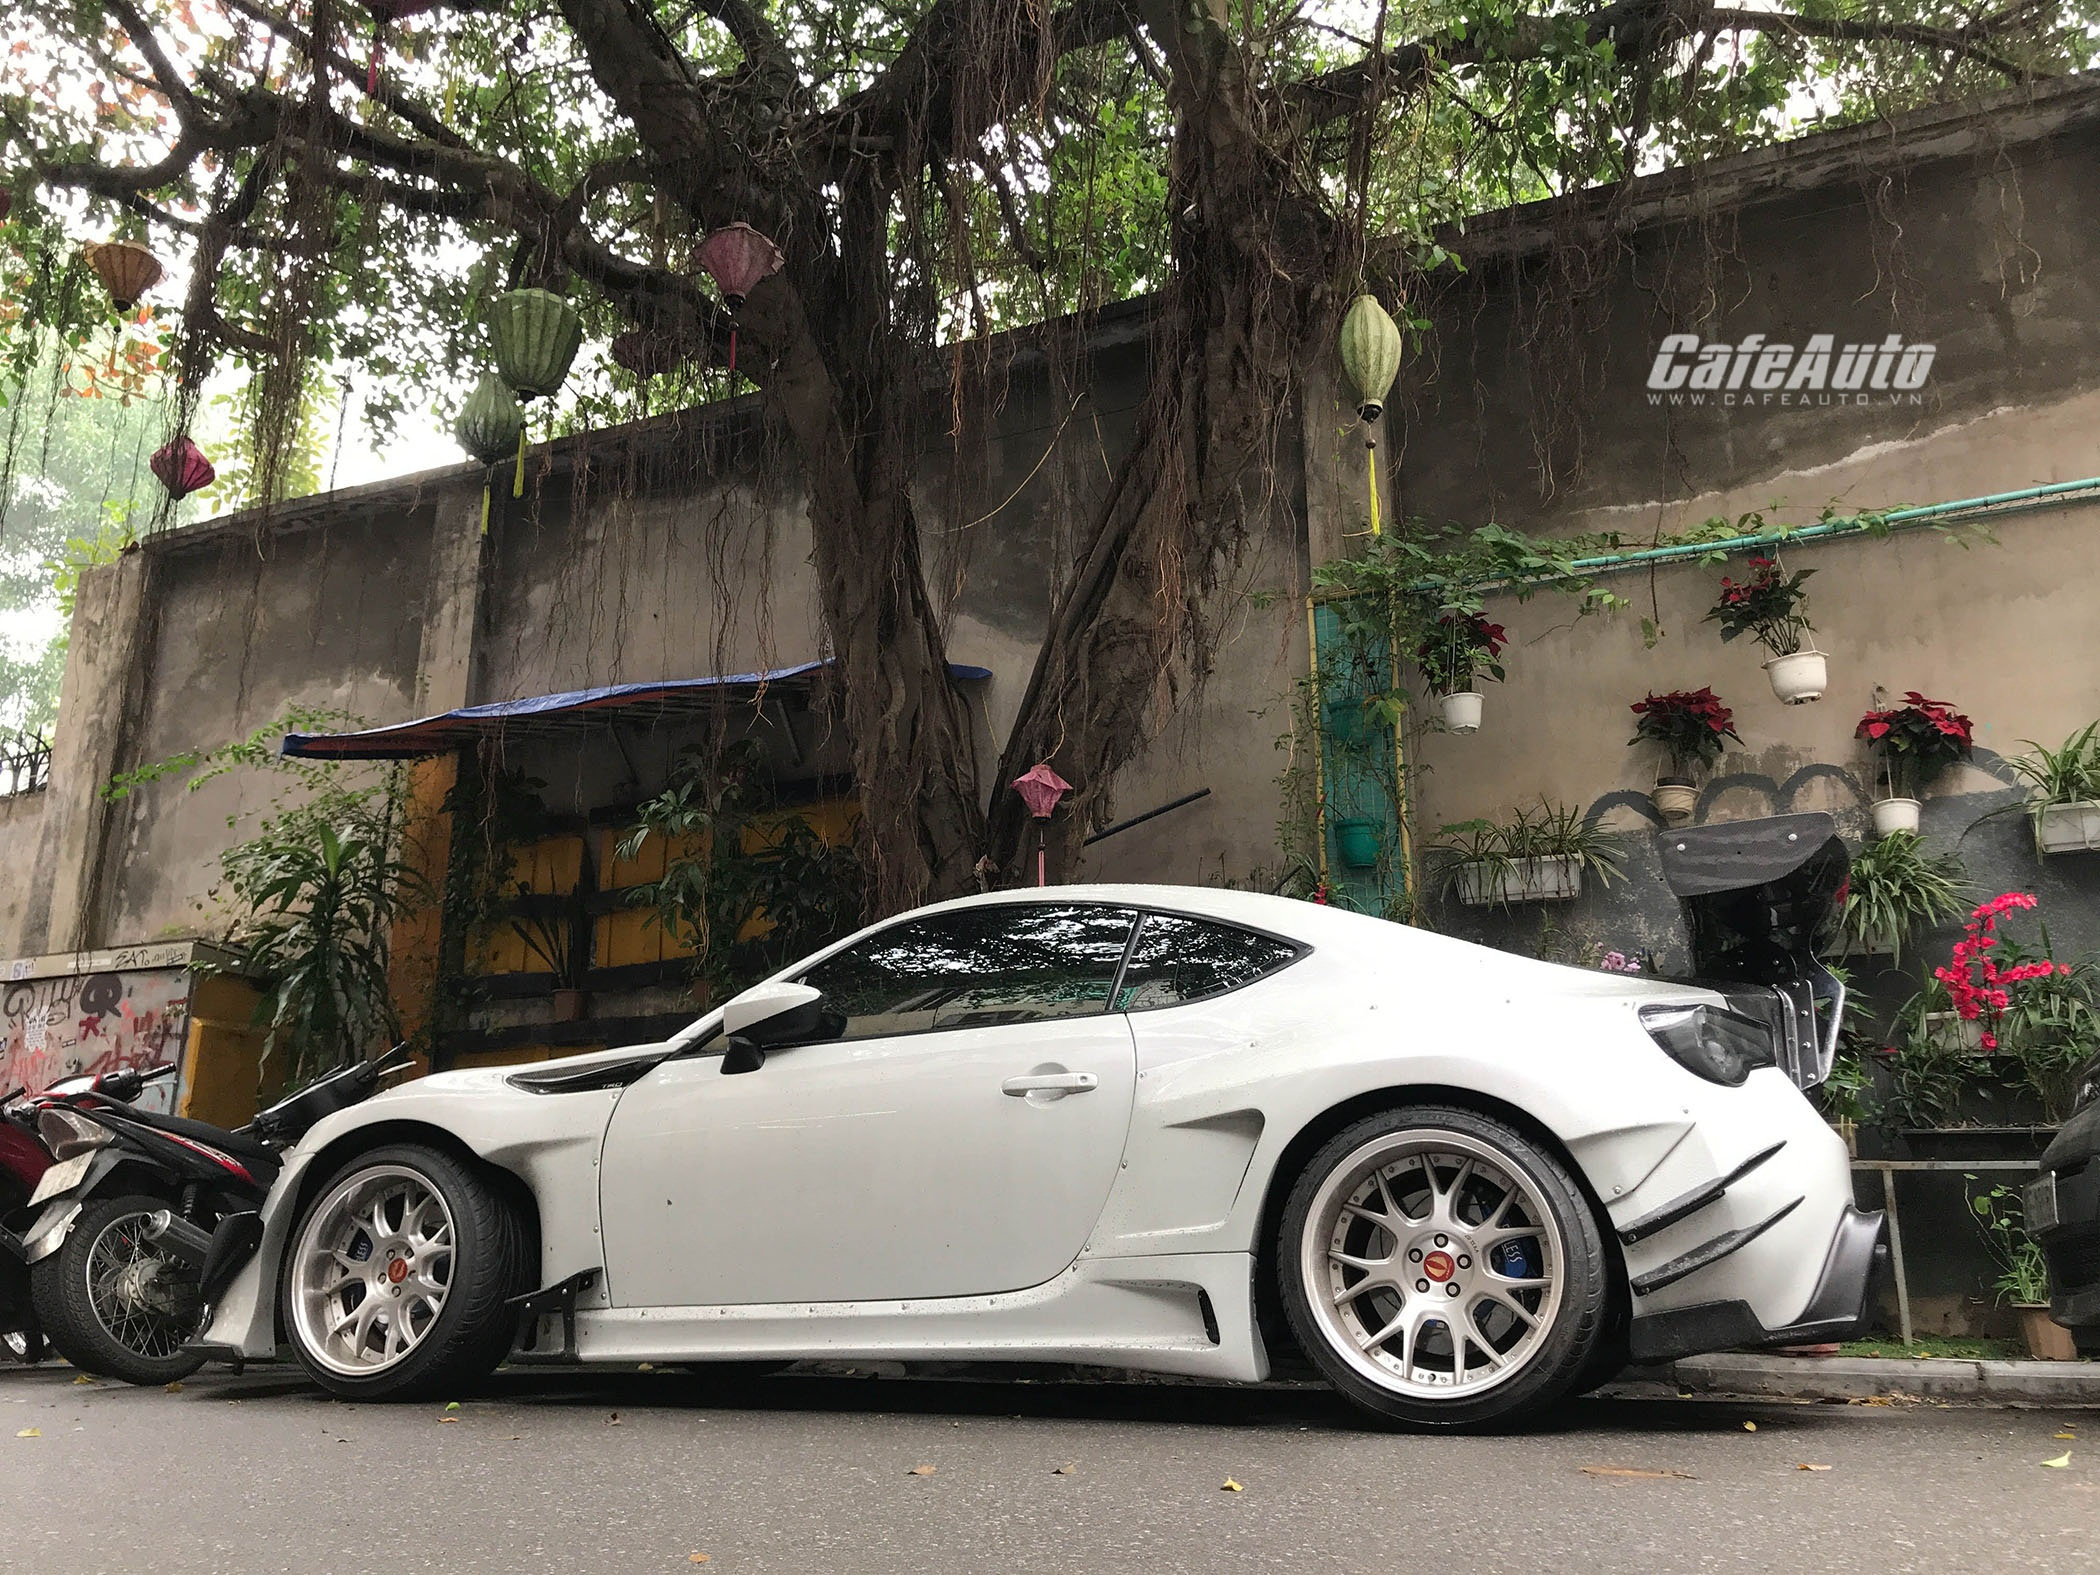 toyota86RB-cafeautovn-8